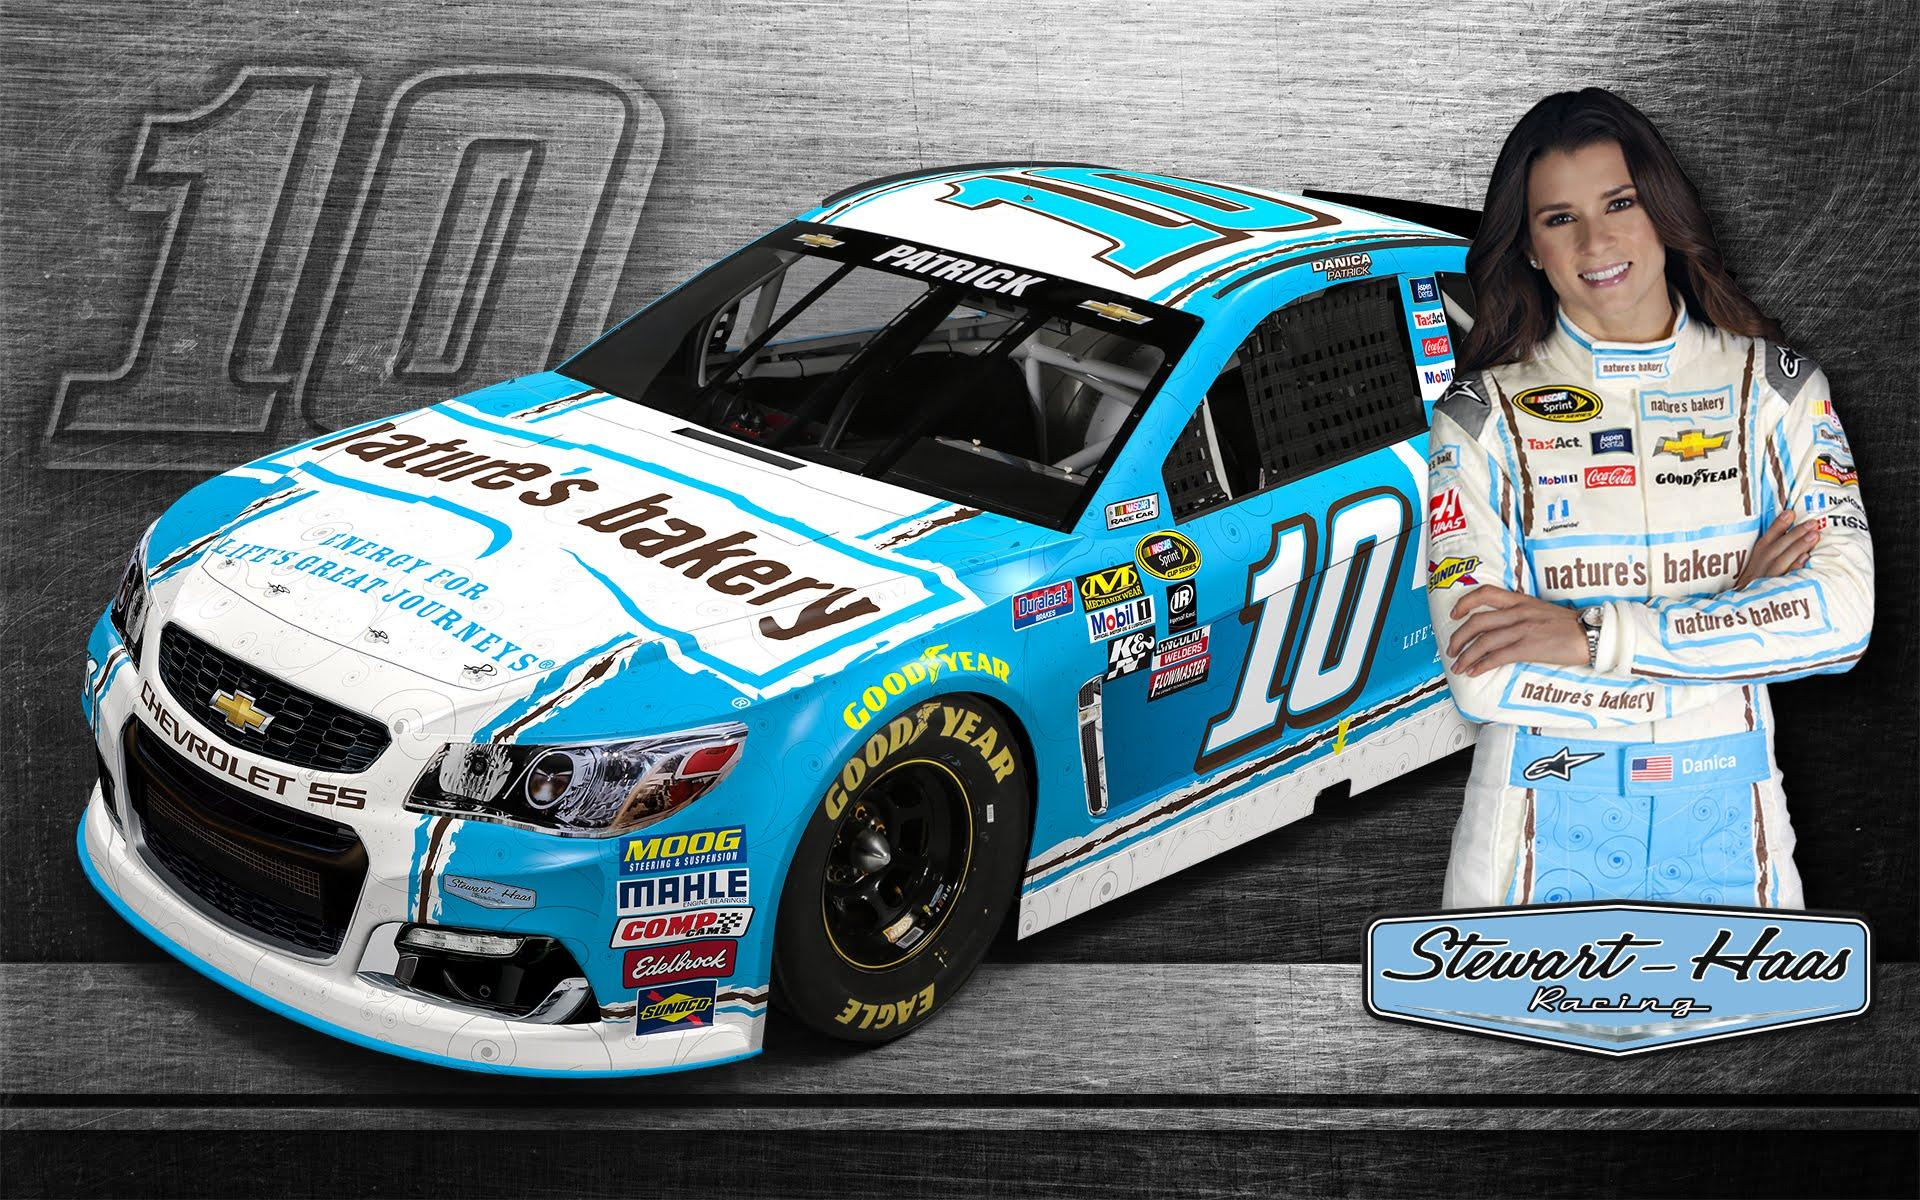 Wallpapers By Wicked Shadows Danica Patrick Dale: Danica Patrick Wallpapers (31 Images)